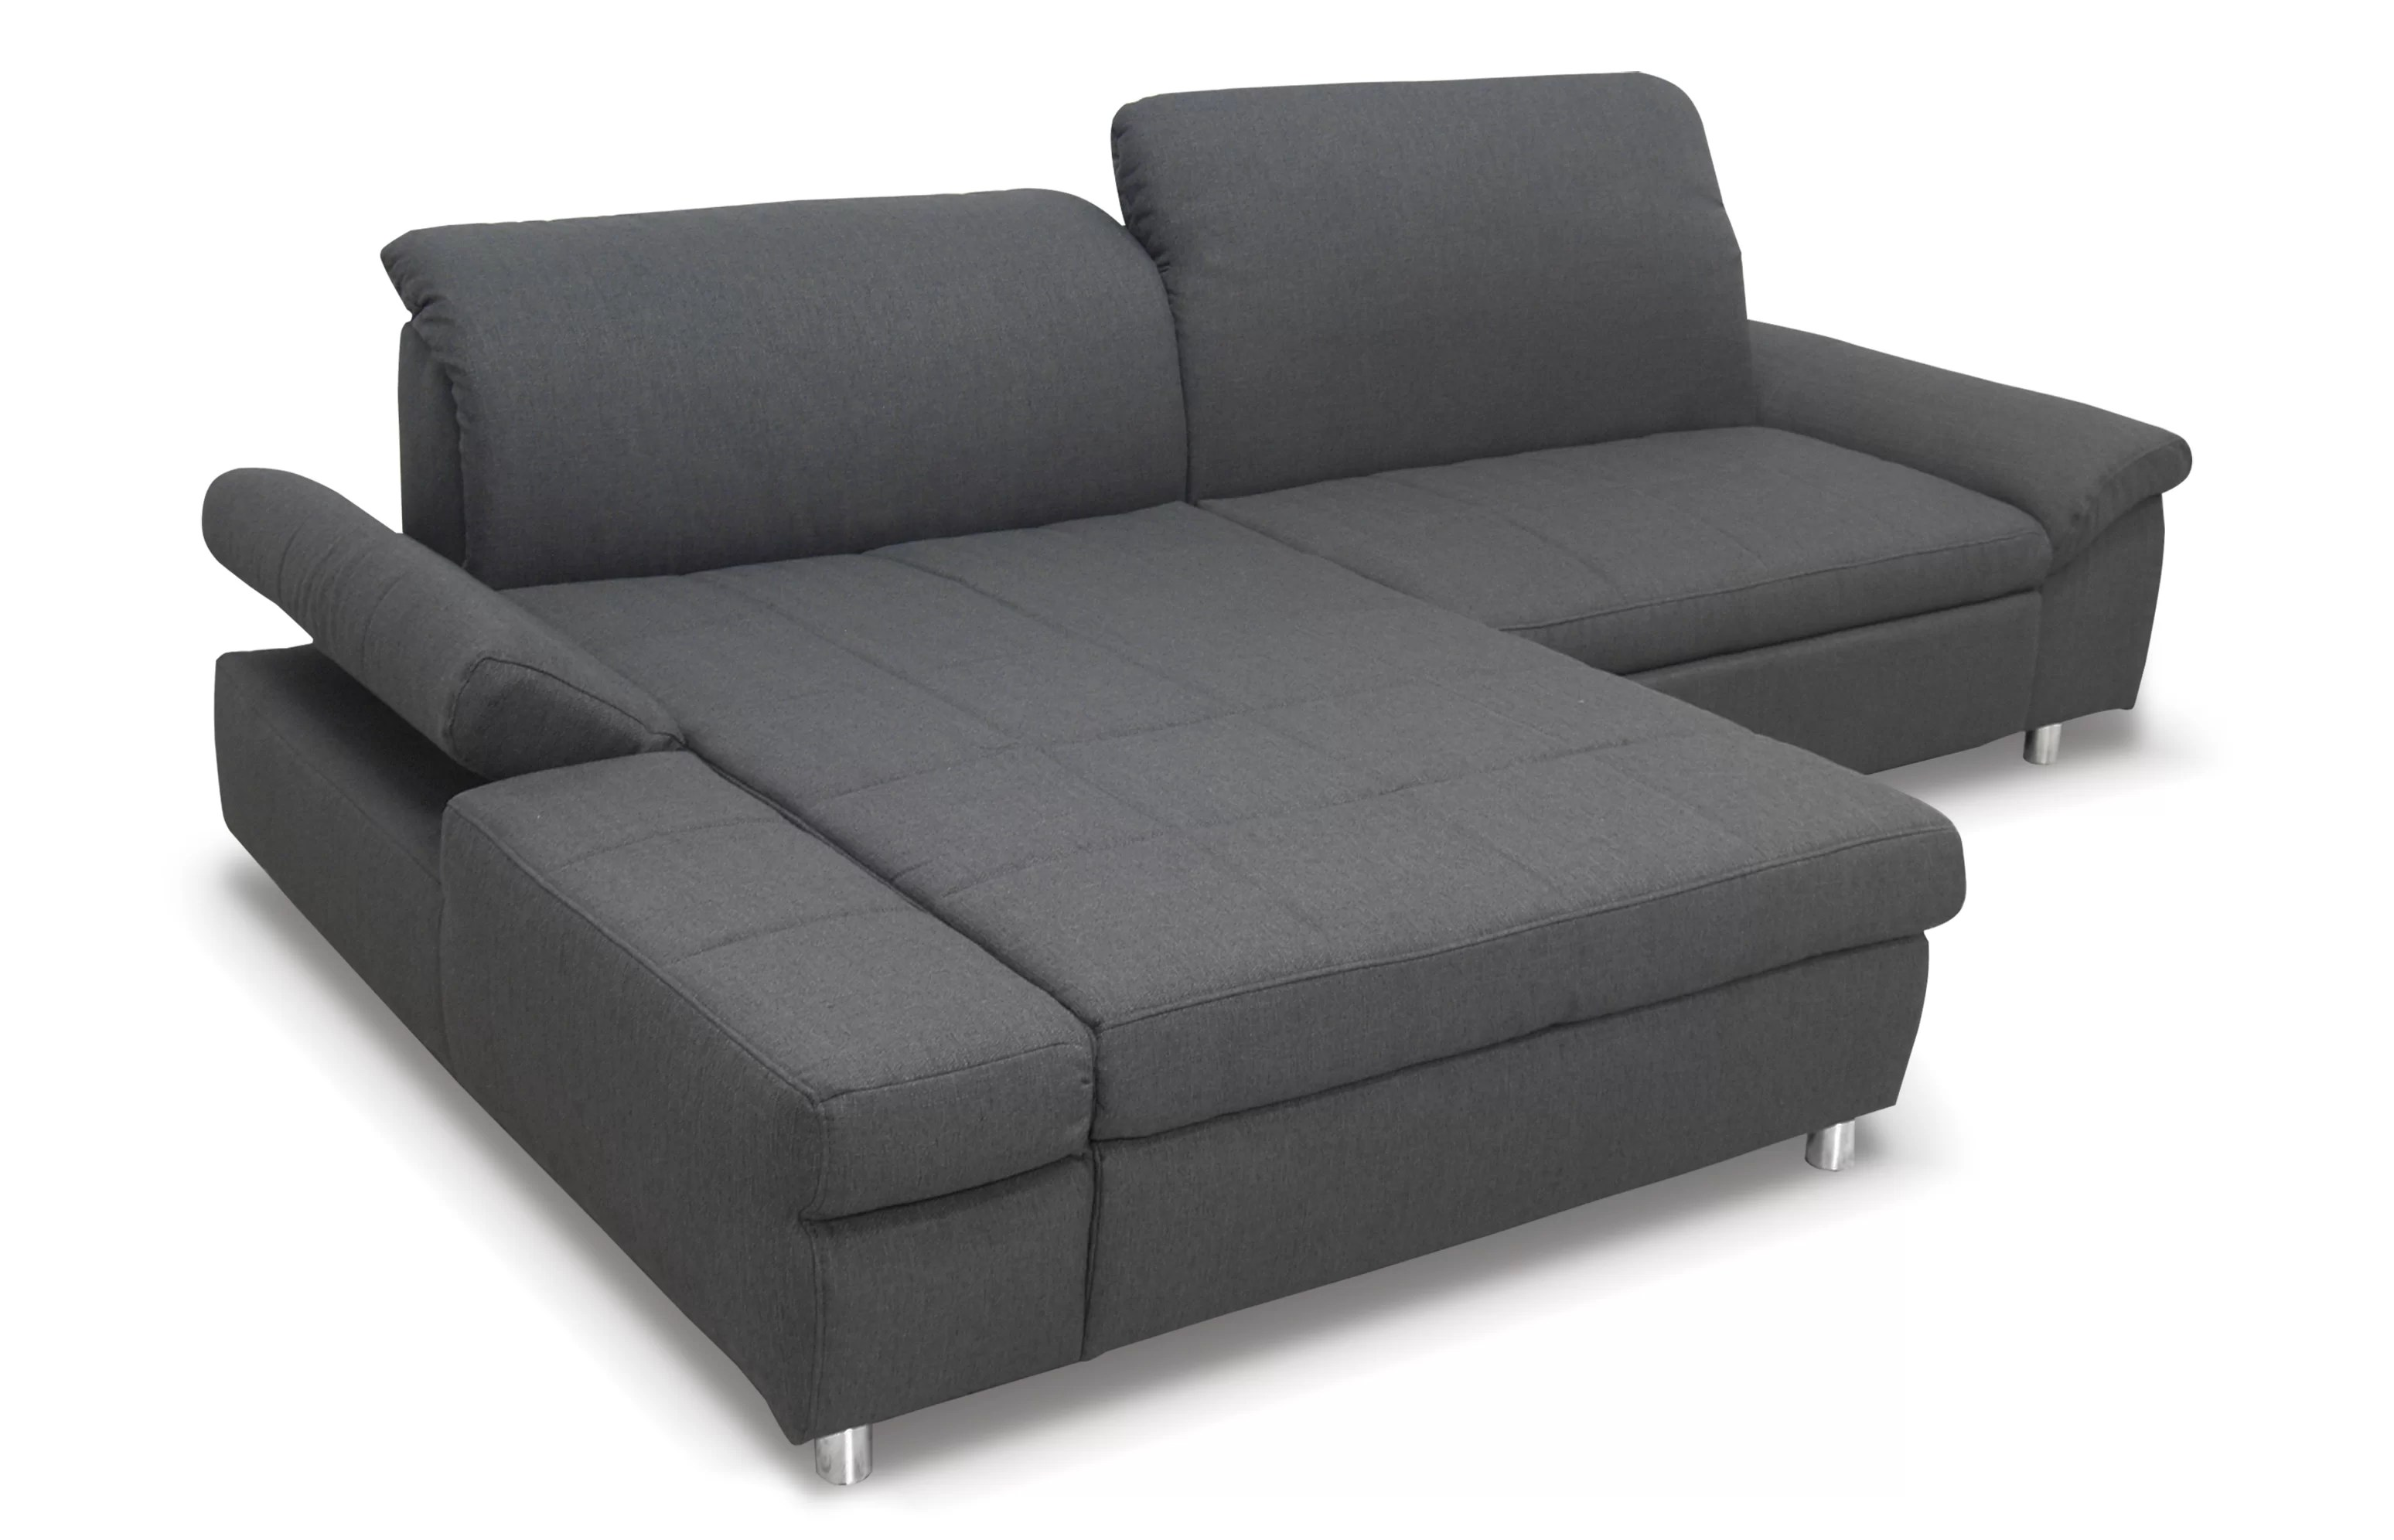 17 Stories Ecksofa Briseno Mit Relaxfunktion Bewertungen Wayfair De